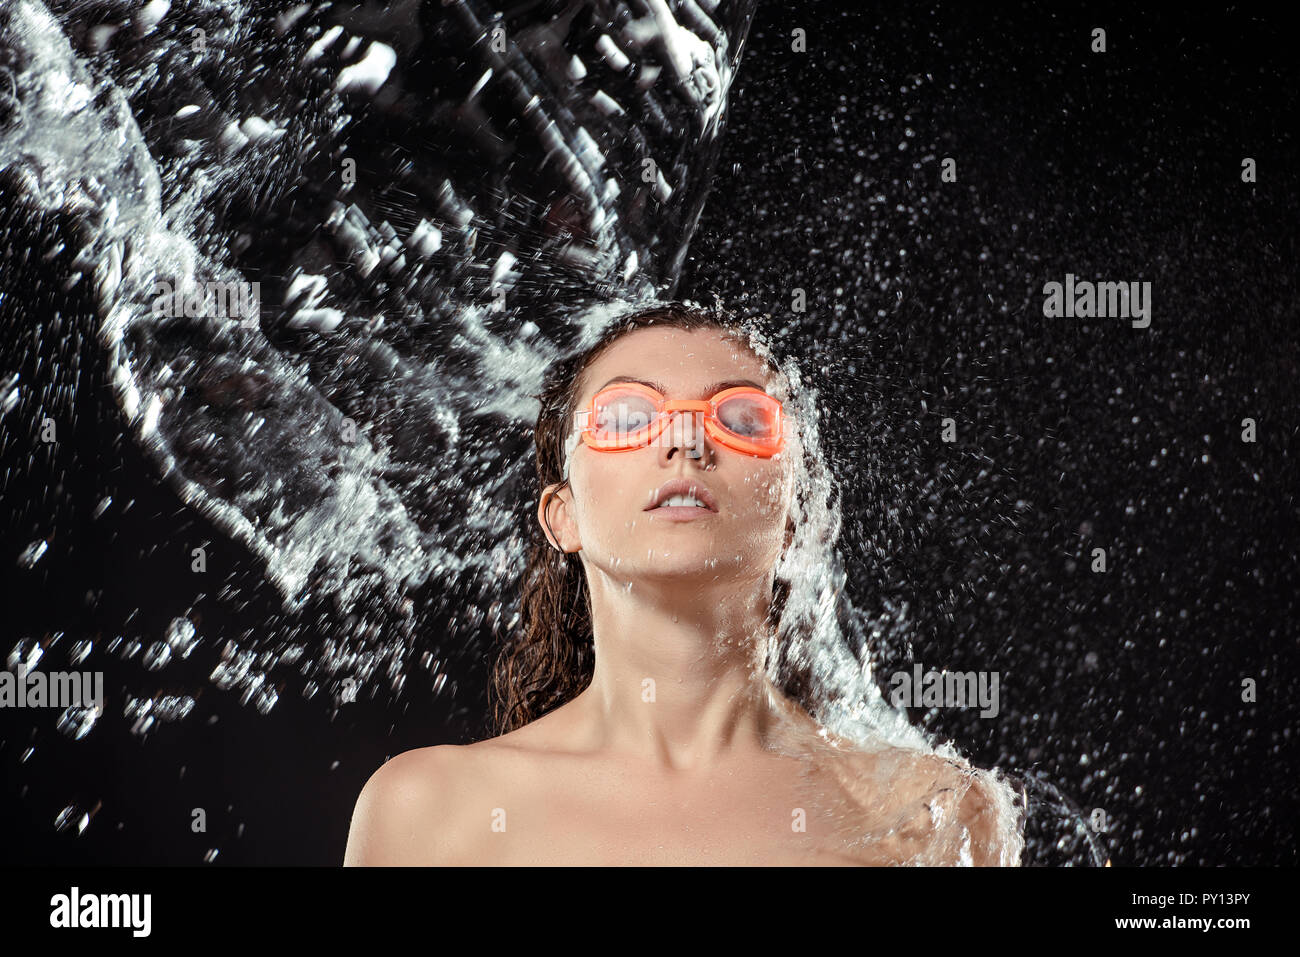 portrait of woman in swimming goggles swilled with water isolated on black - Stock Image